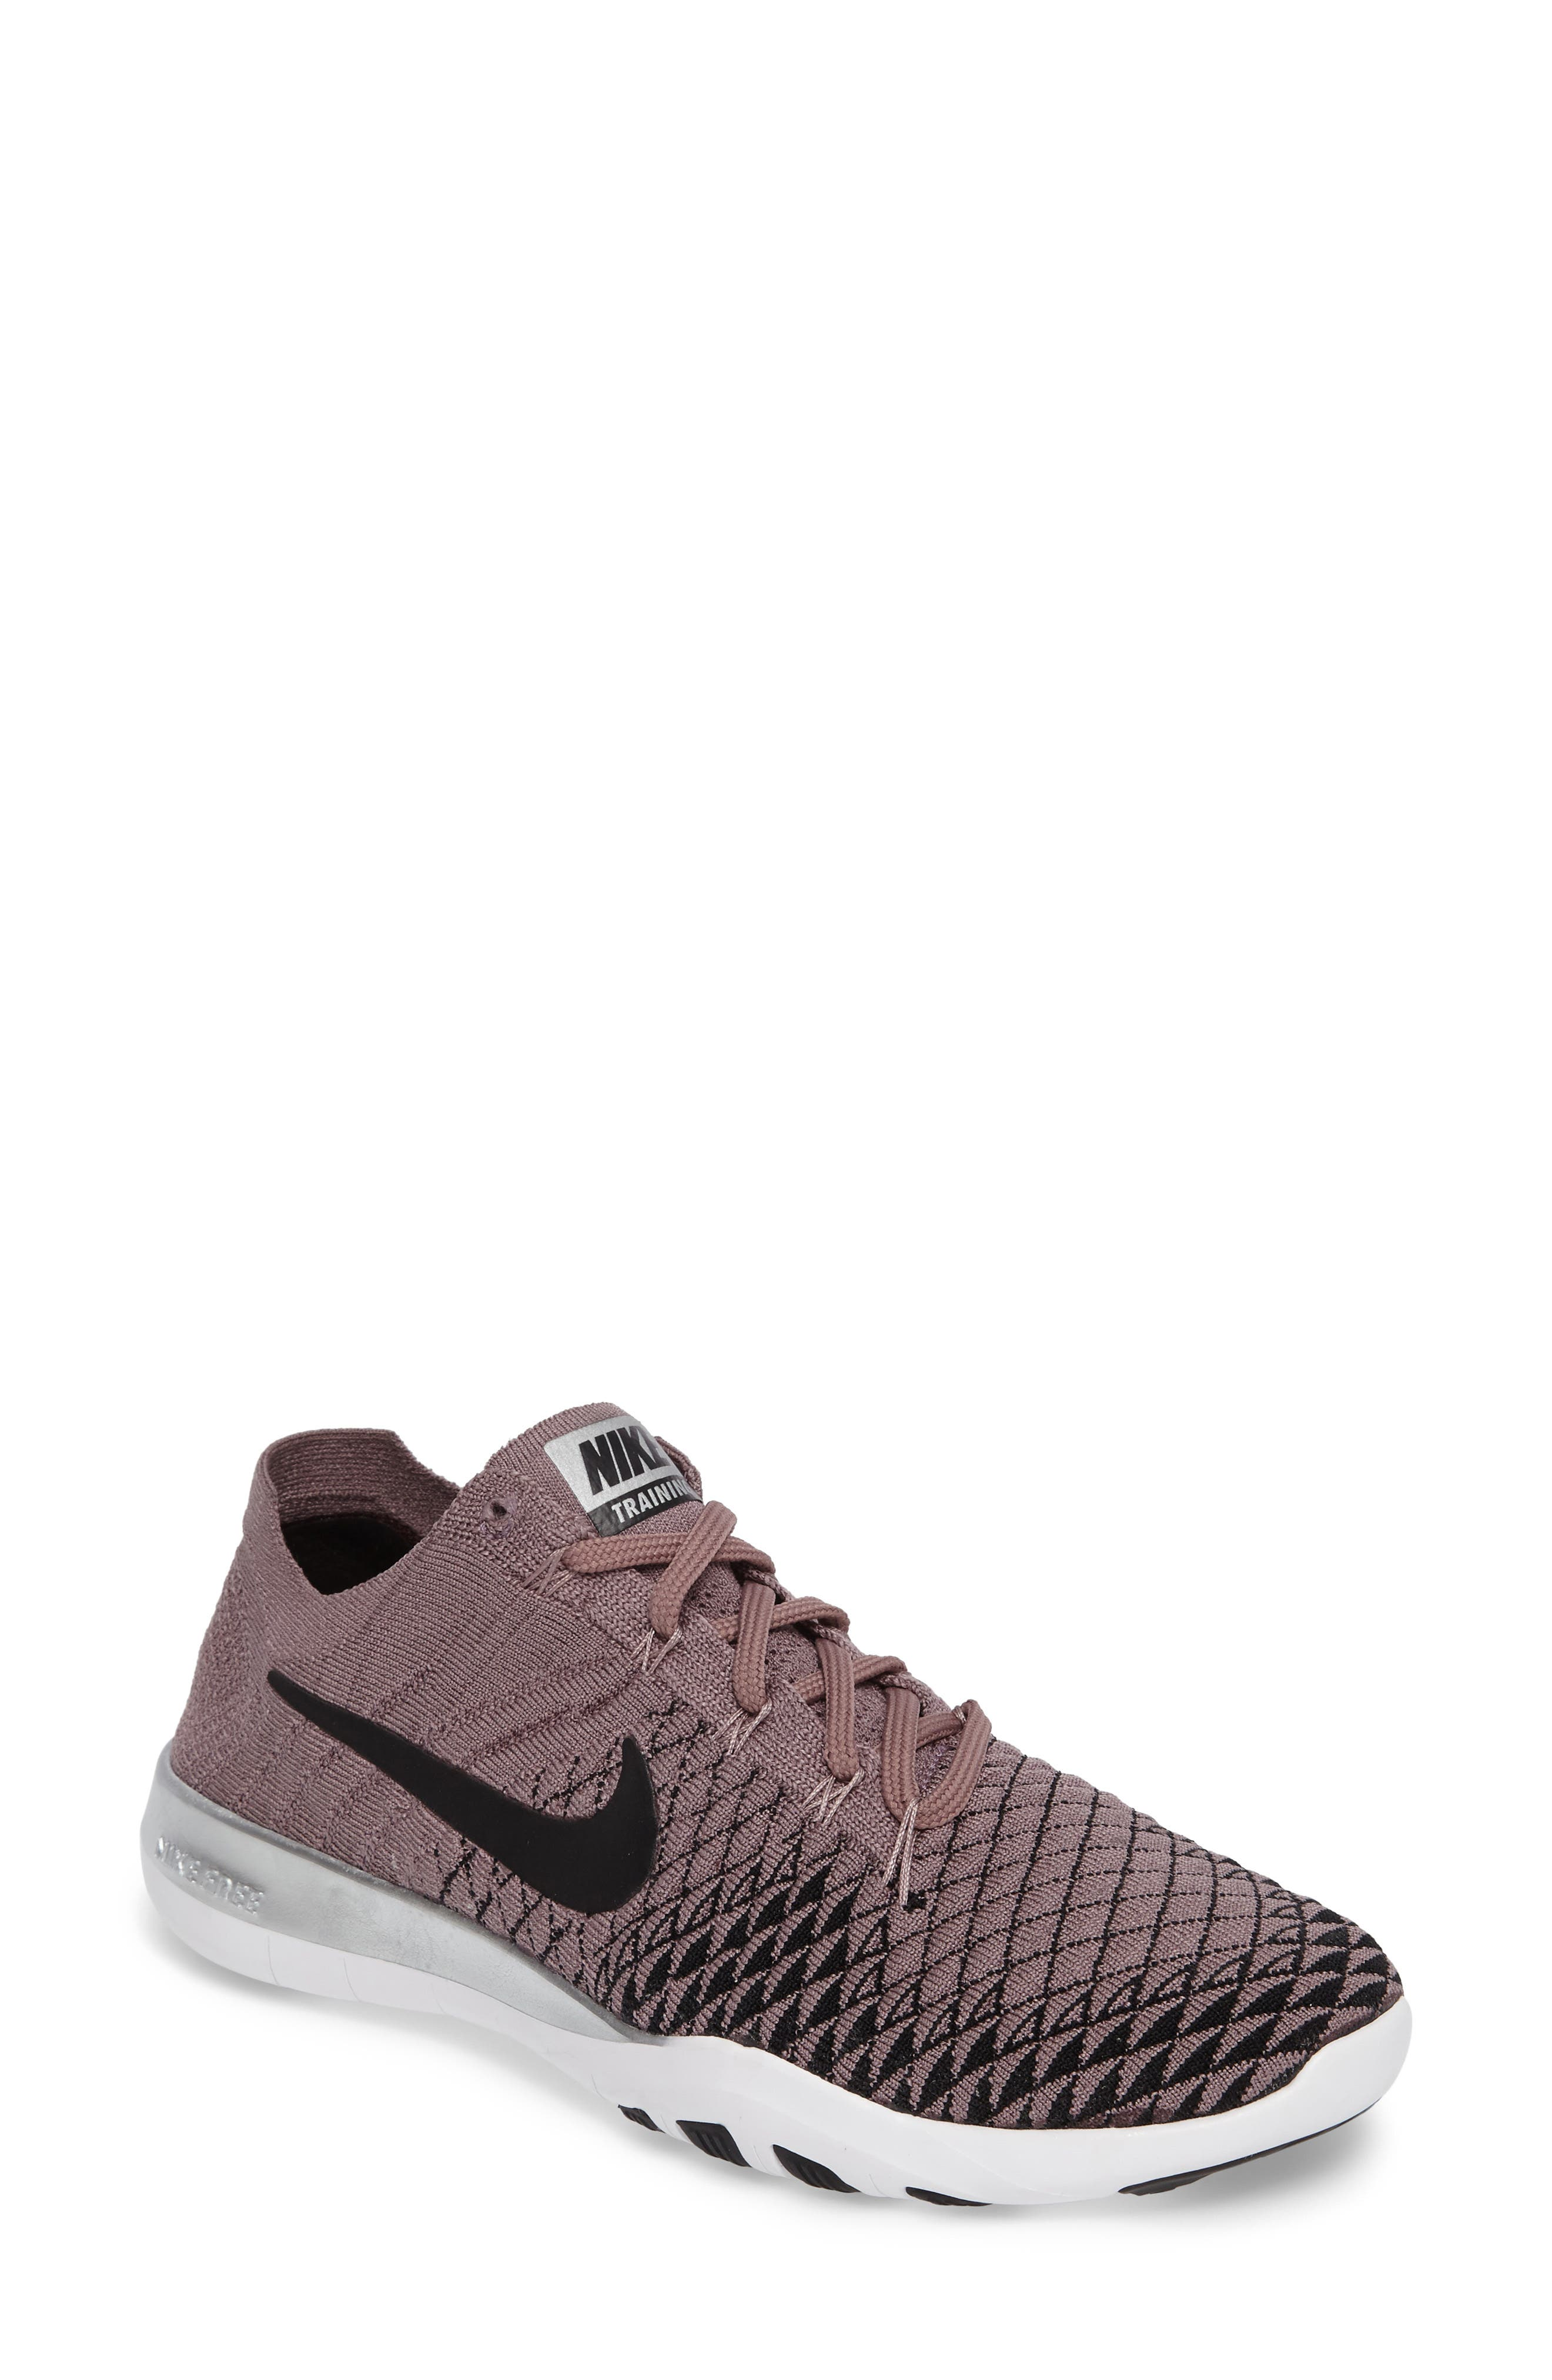 Free Focus Flyknit 2 Bionic Training Shoe,                         Main,                         color, Taupe Grey/ Black/ Chrome